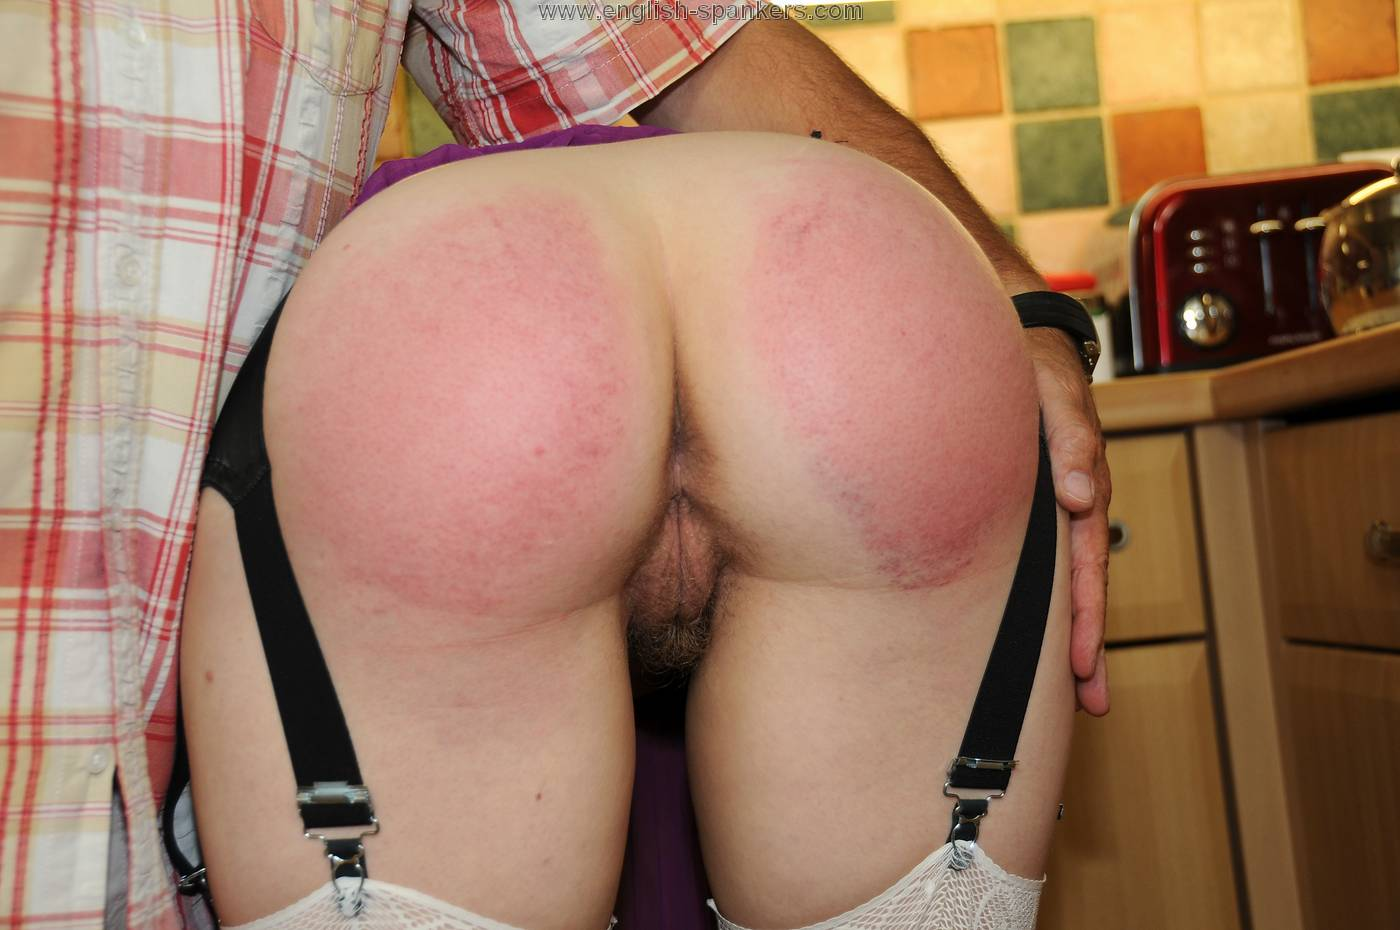 Cute Uk Hairy Gay Fucking Butt Ass Photo Wesley Gets Drenched With